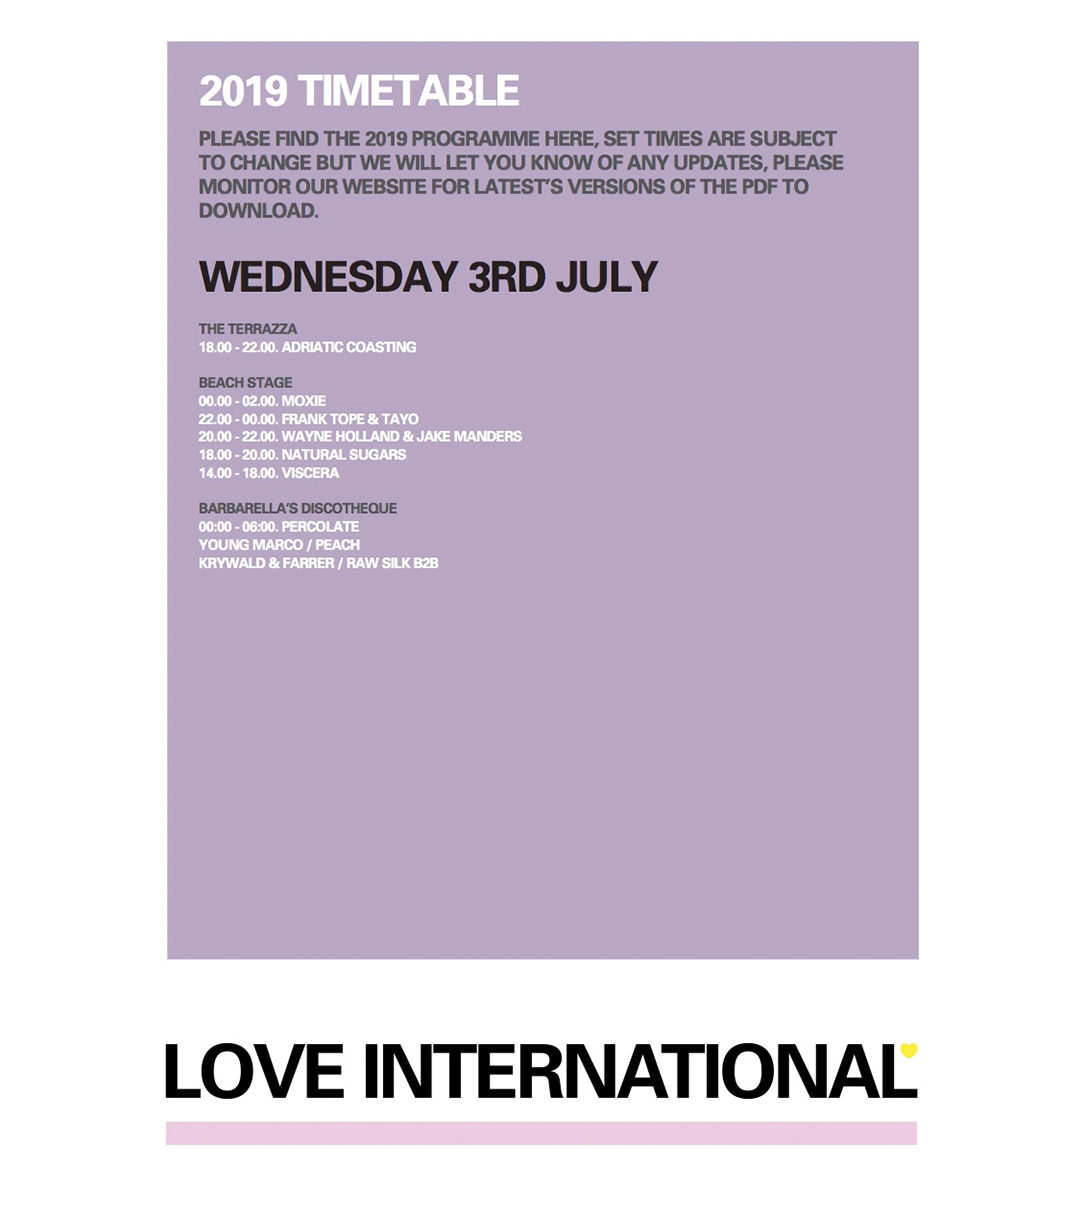 Wed 3rd July